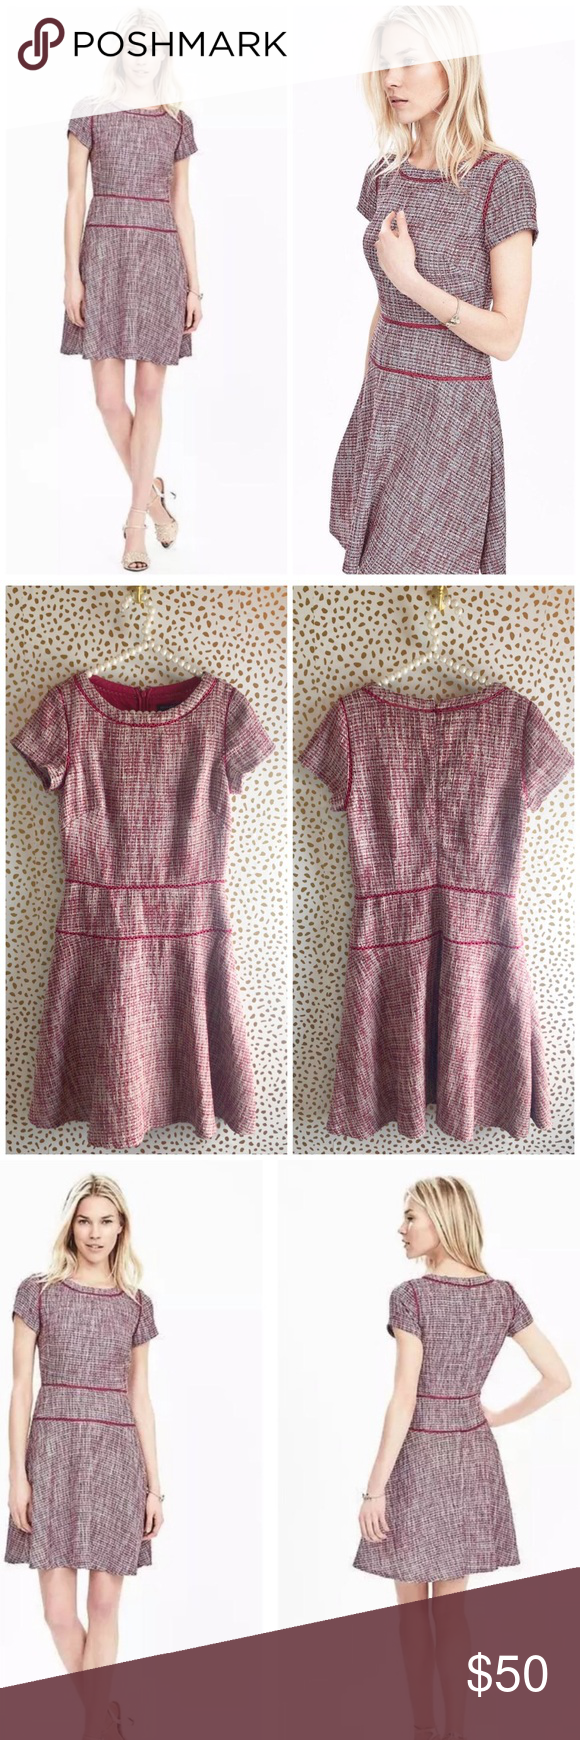 8884229b6ff Banana Republic Pink Tweed Fit   Flare Dress Excellent pre owned condition.  Size 8 TALL. Pink tweed with fit and flare skirt. No trades!!